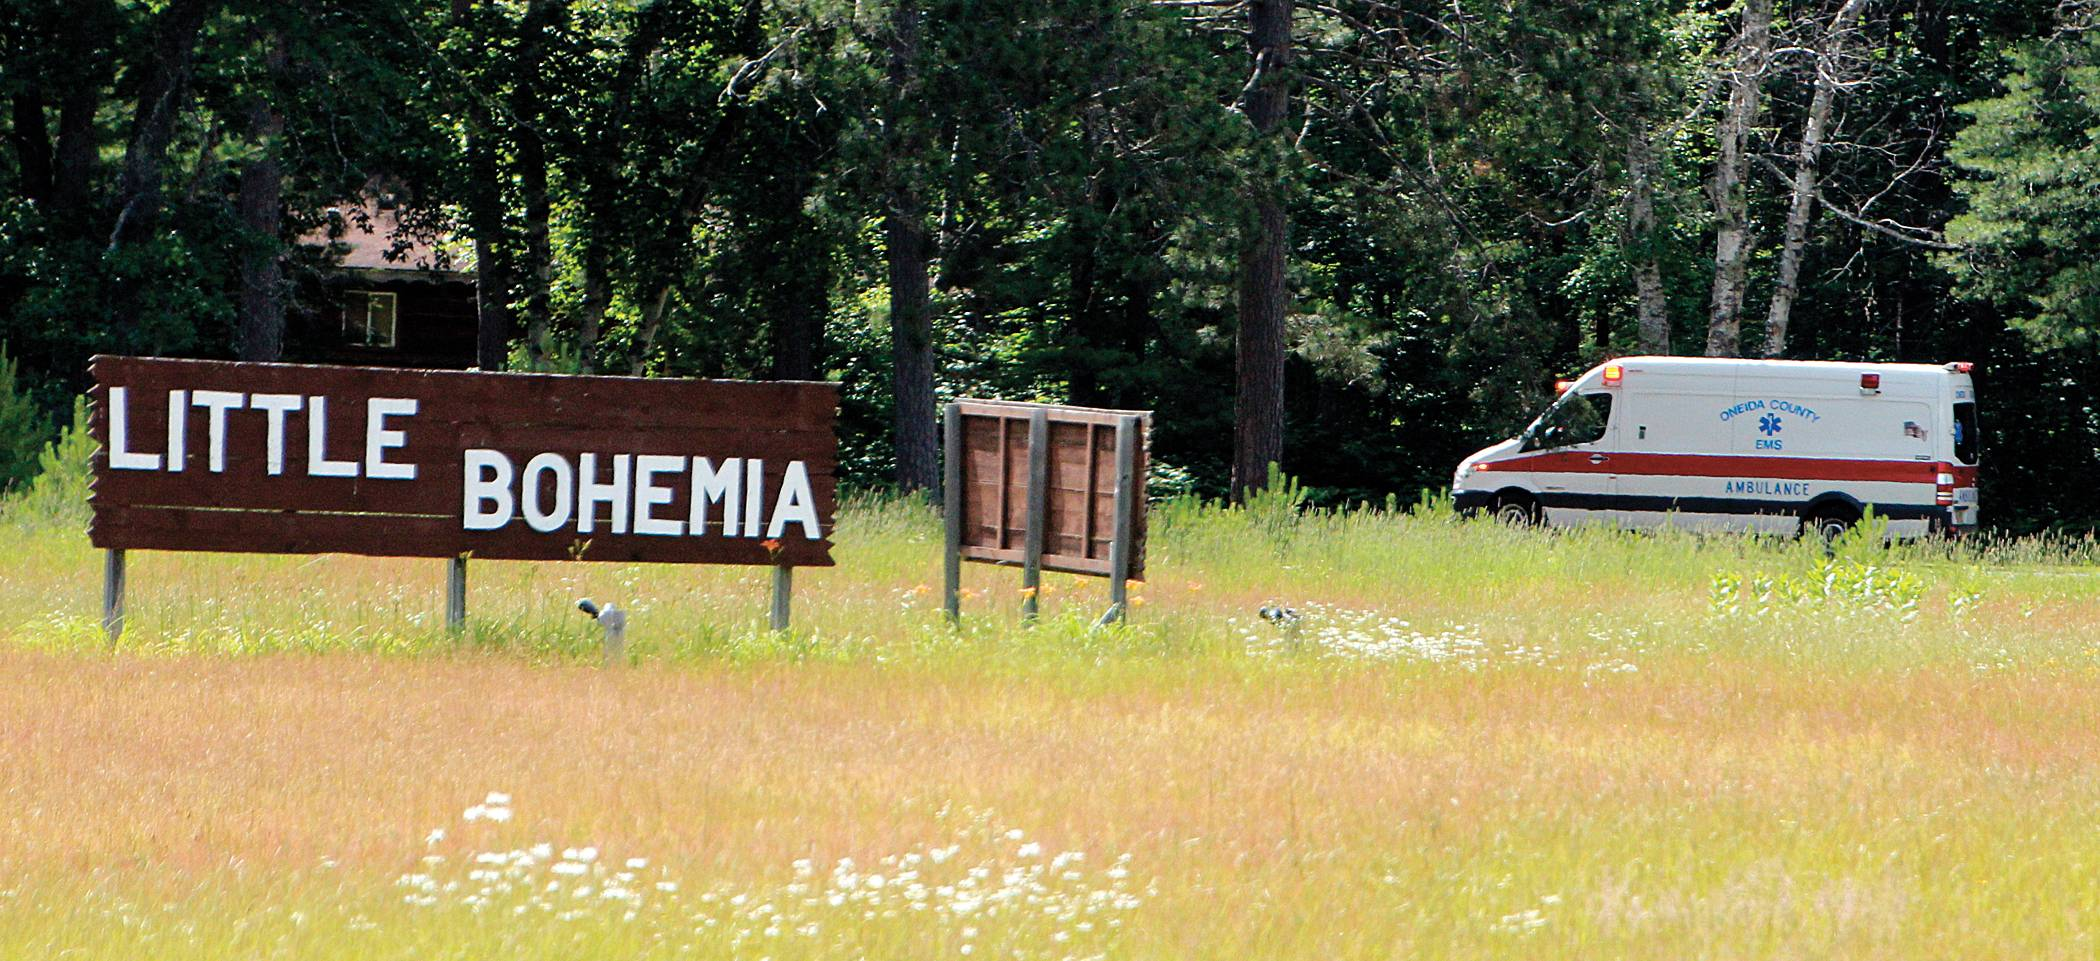 An ambulance enters the property of the Little Bohemia Lodge near Manitowish Waters, Wisconsin in response to a boating accident Thursday afternoon that left a 12-year-old Arlington Heights girl and her 11-year-old brother hospitalized with injuries. The crash remains under investigation.